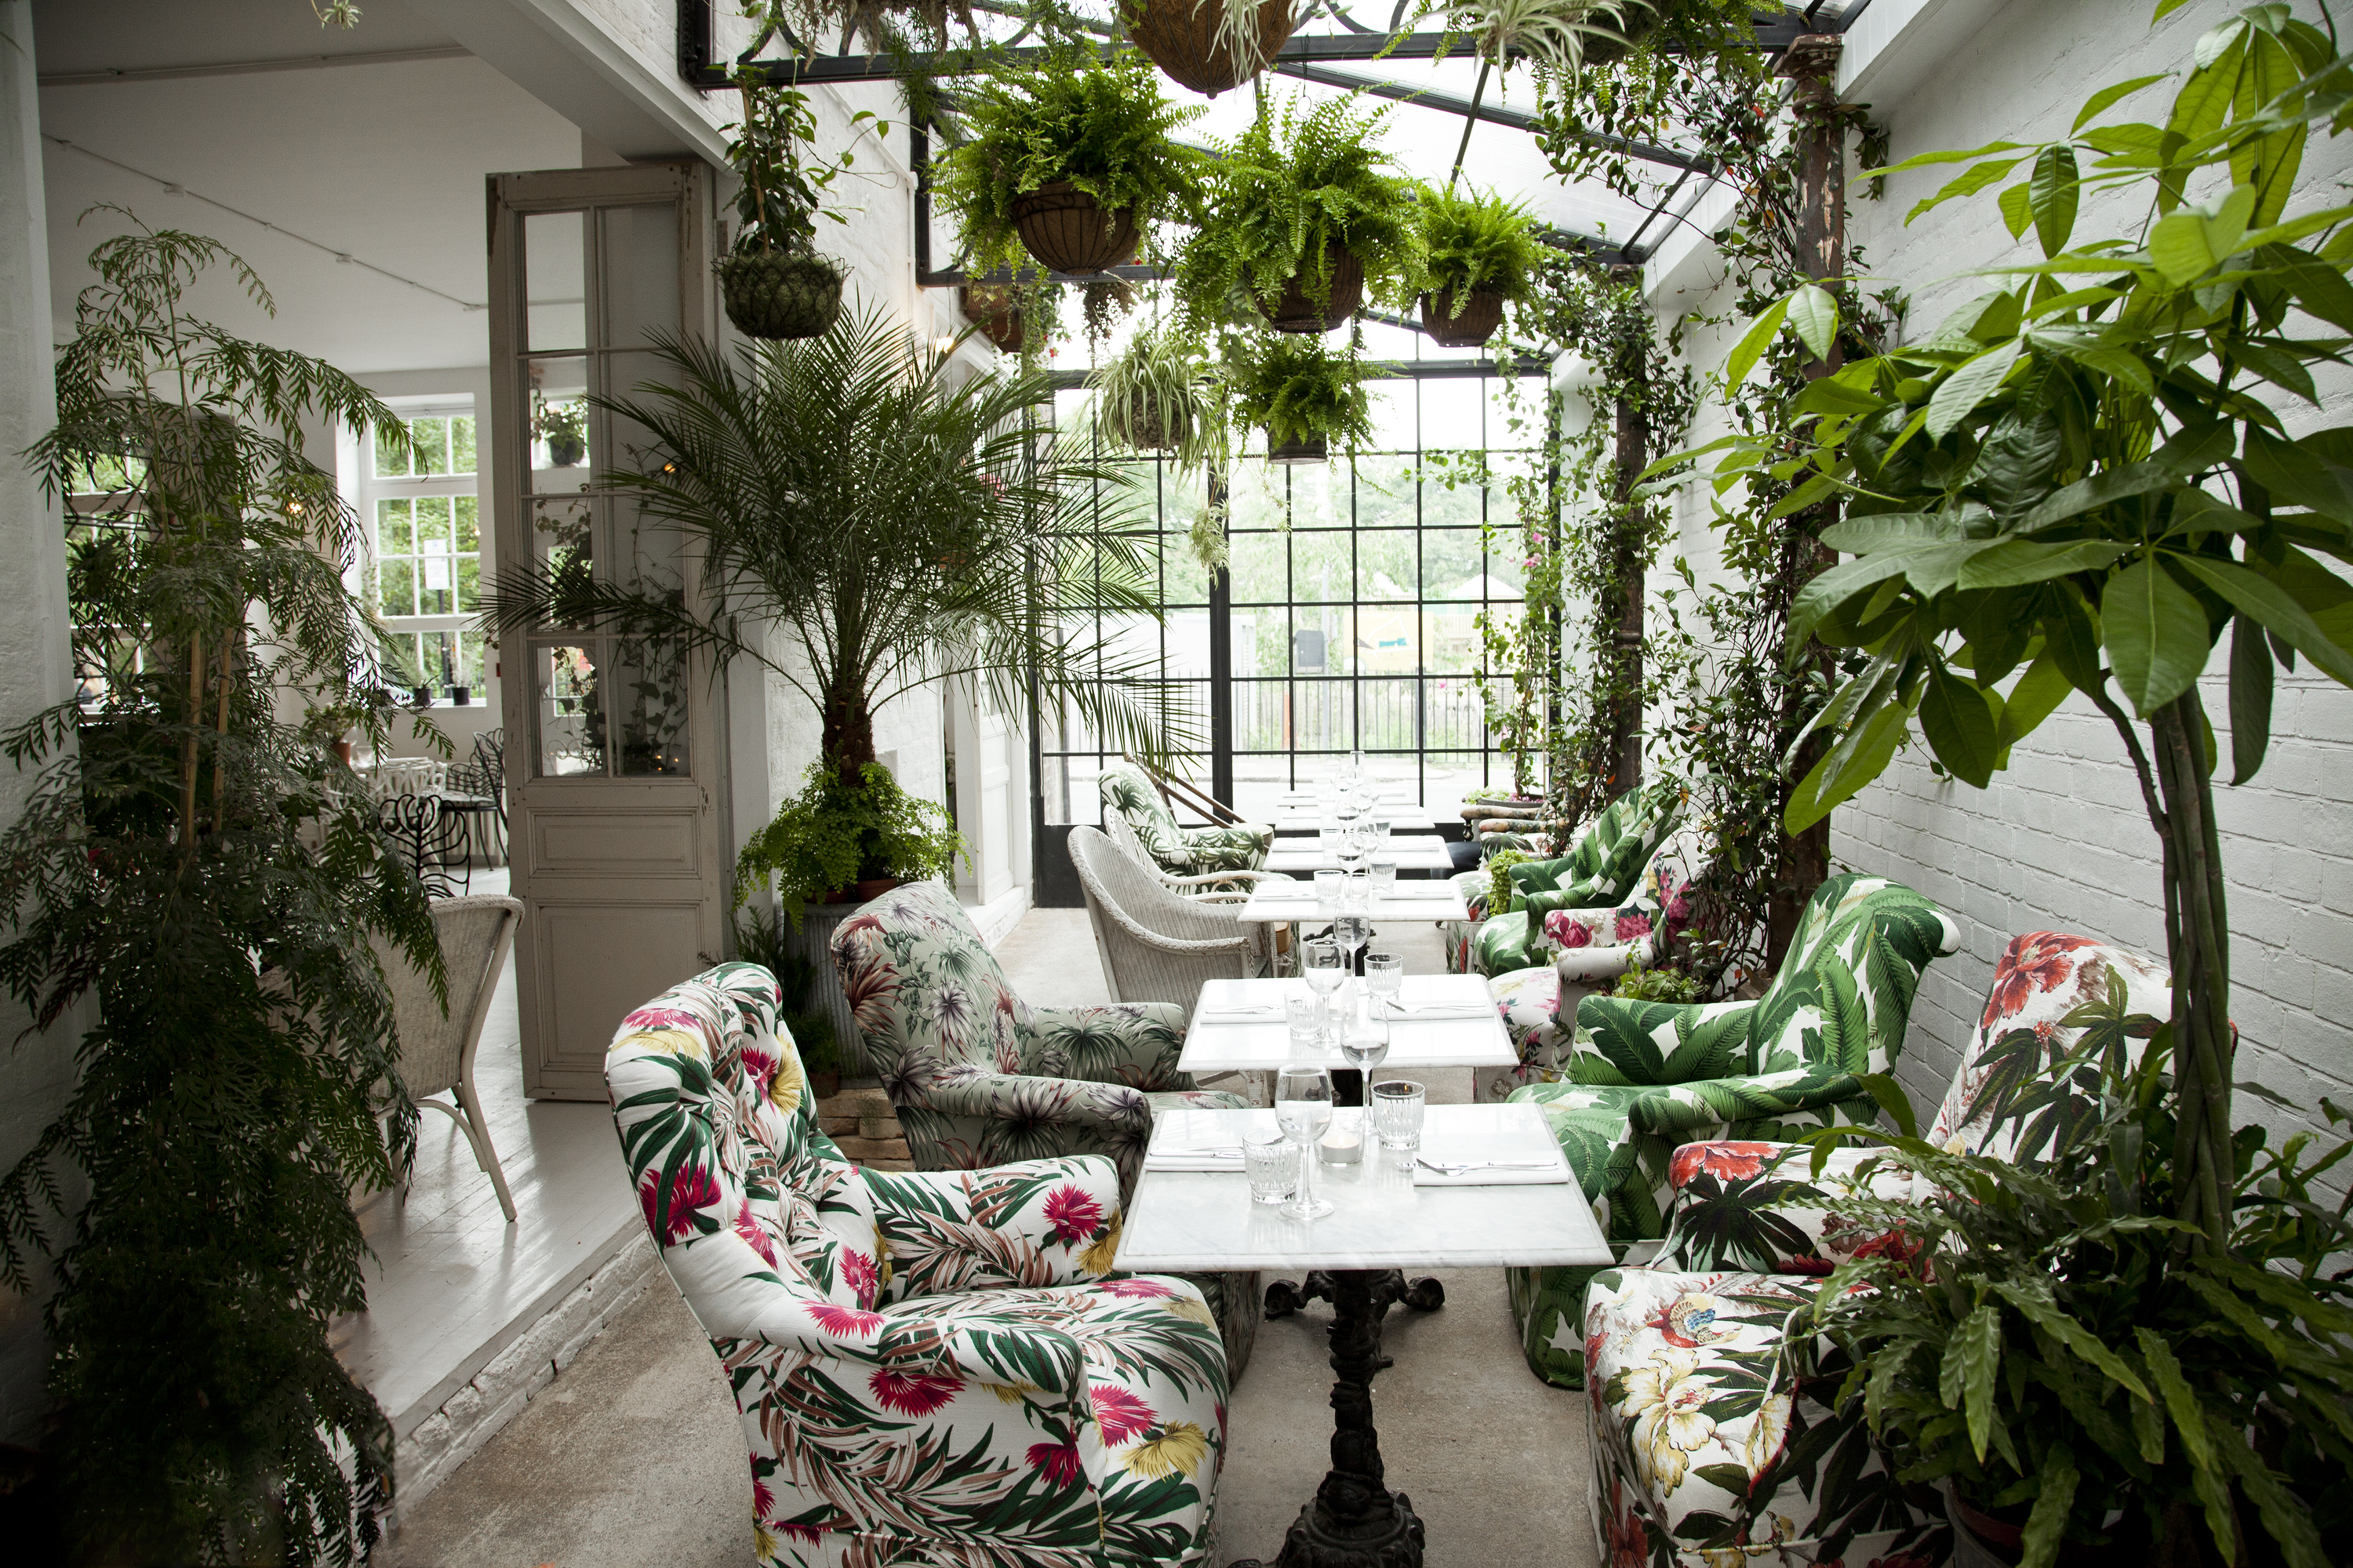 Best gardens in london restaurants for Modern garden rooms london